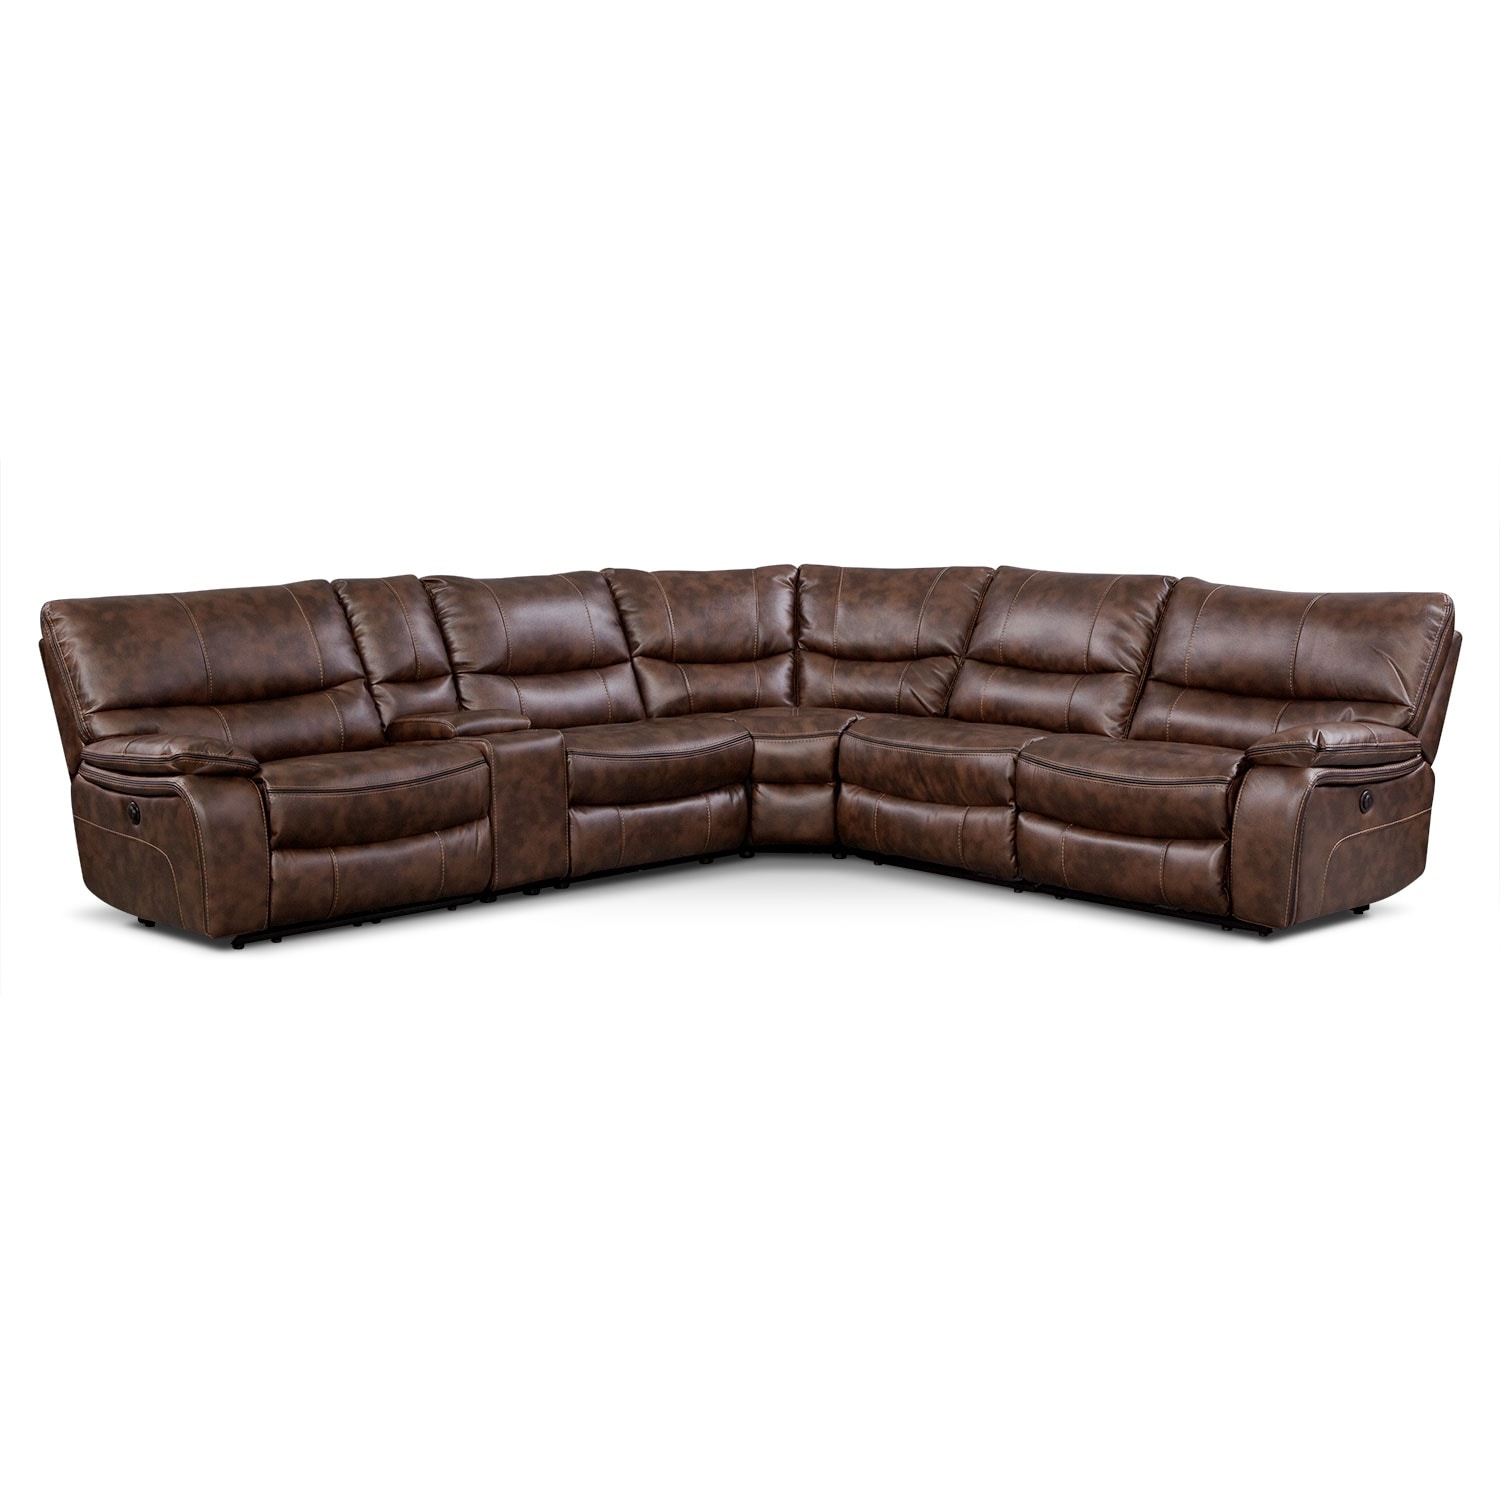 Orlando 6-Piece Power Reclining Sectional w/ 1 Stationary Chair - Brown